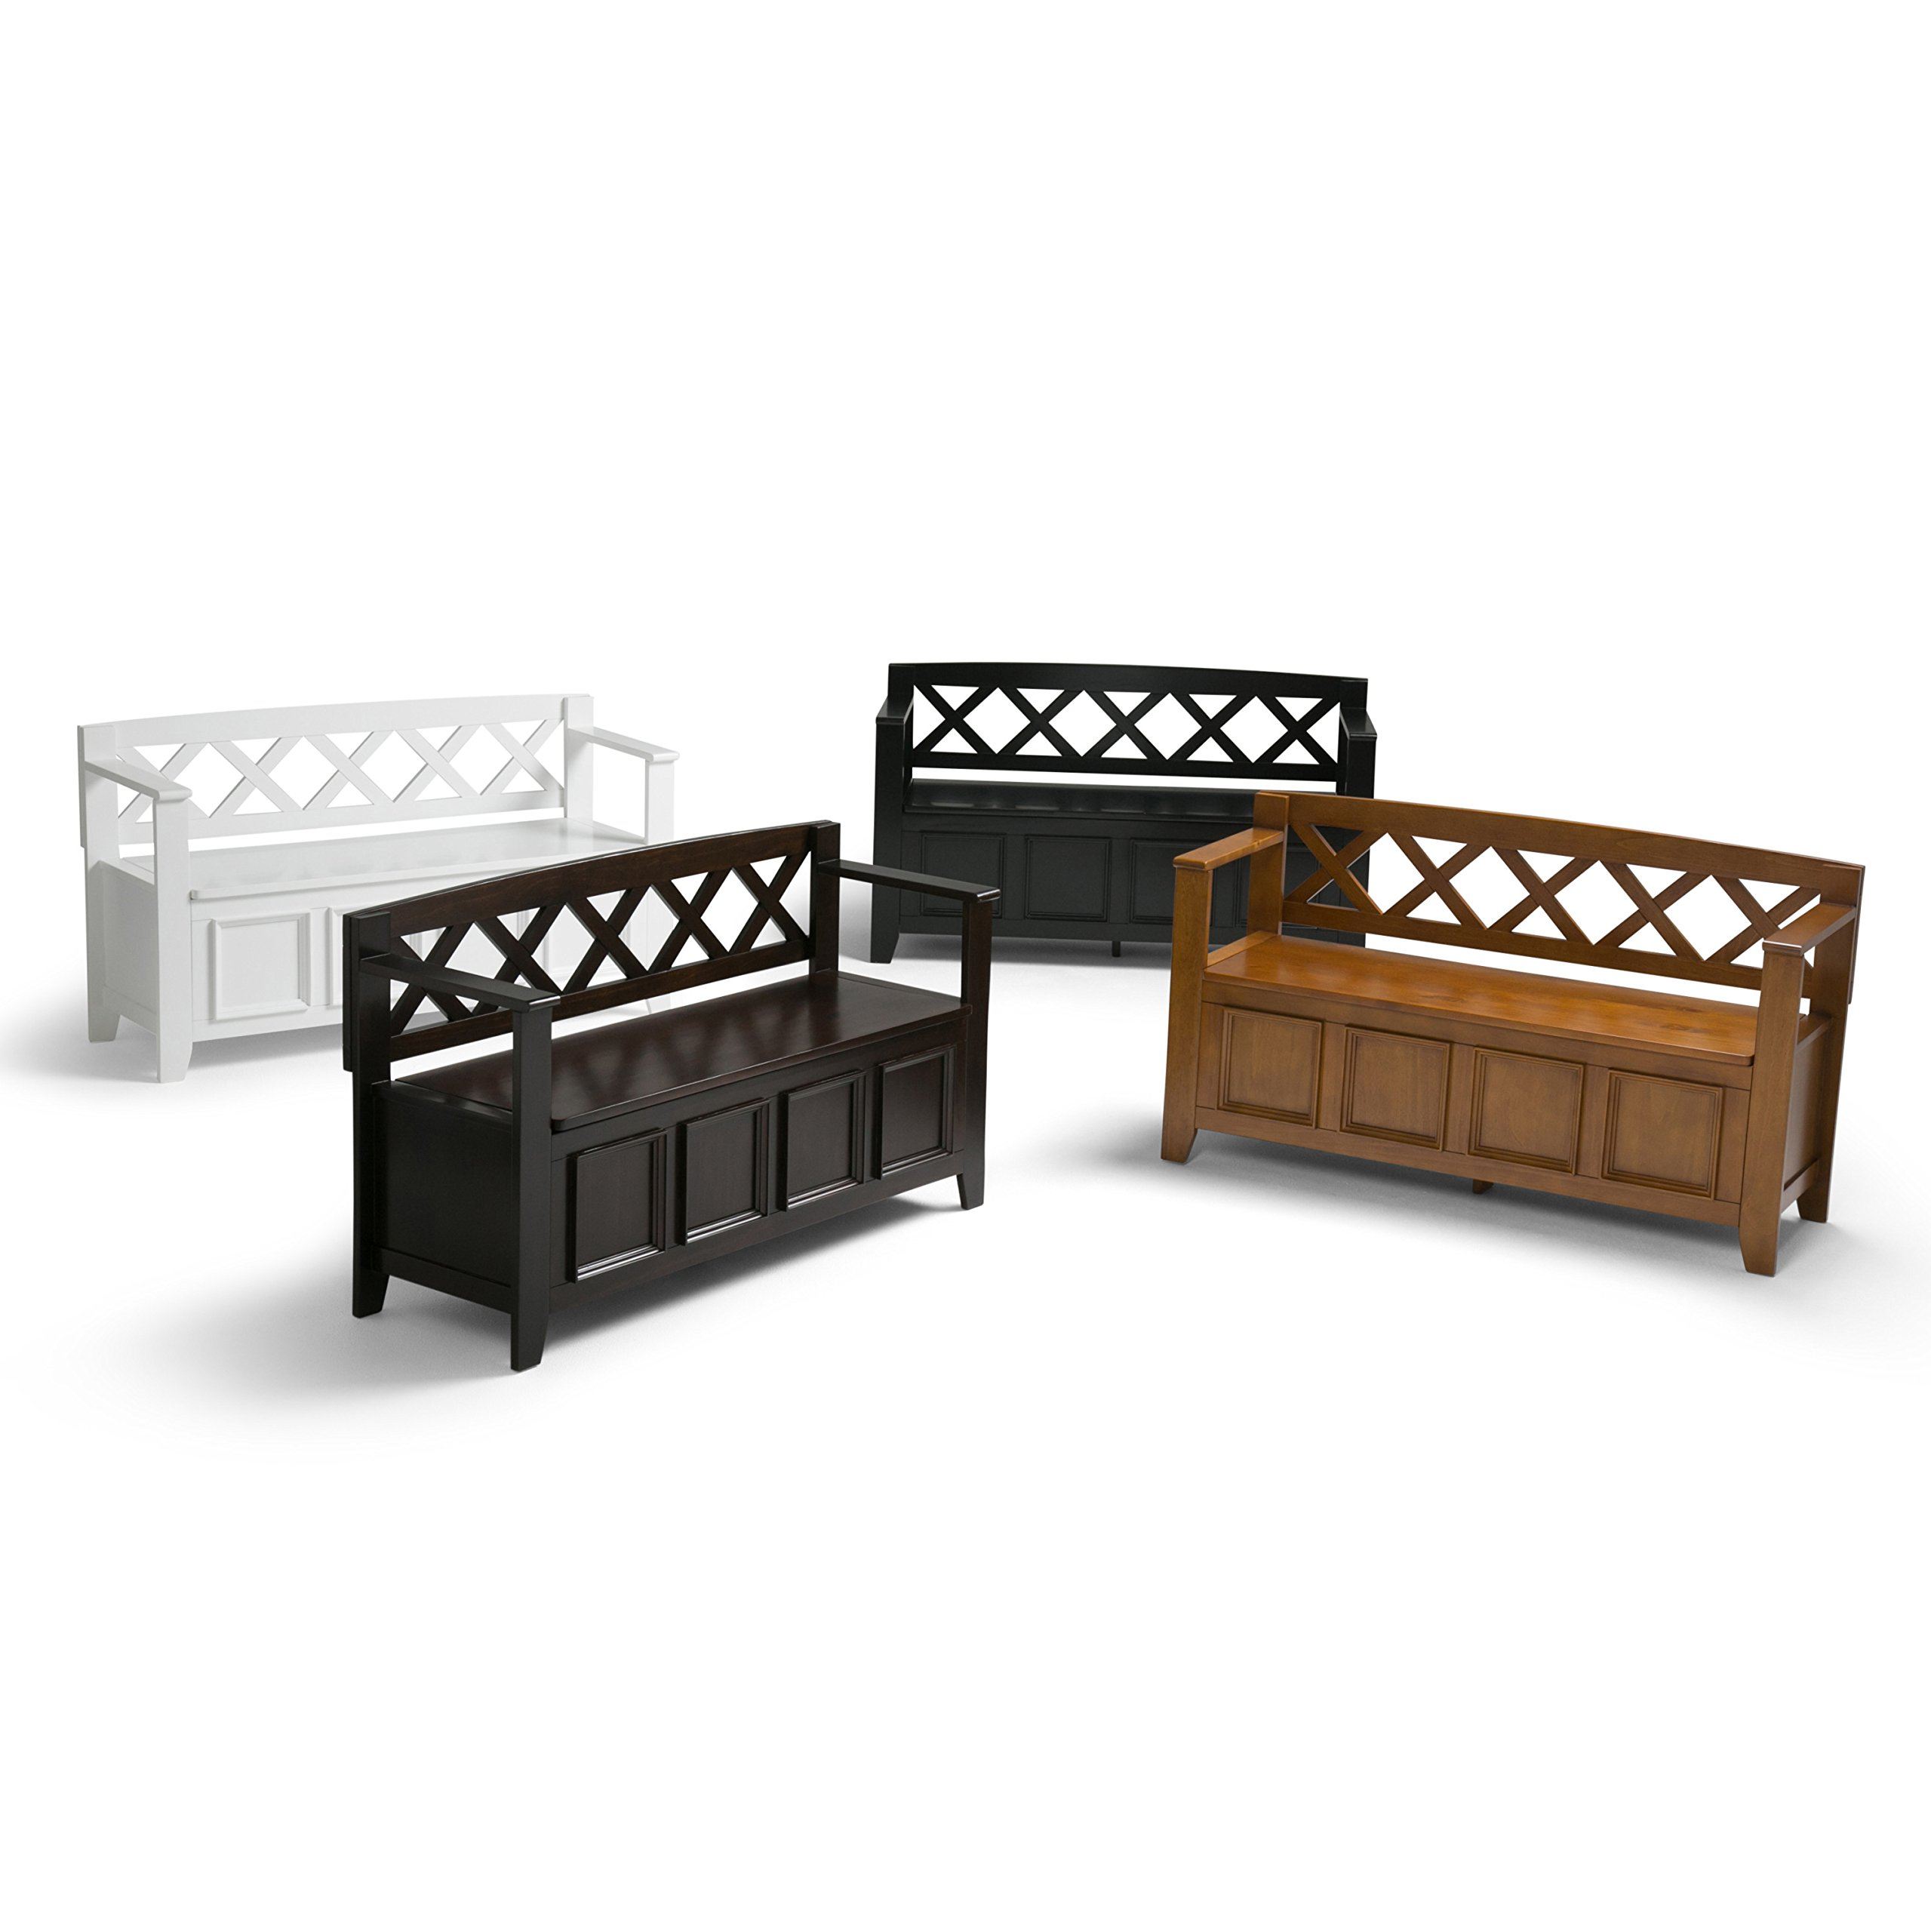 Simpli Home Amherst Solid Wood Entryway Storage Bench, Light Avalon Solid Wood Brown by Simpli Home (Image #7)